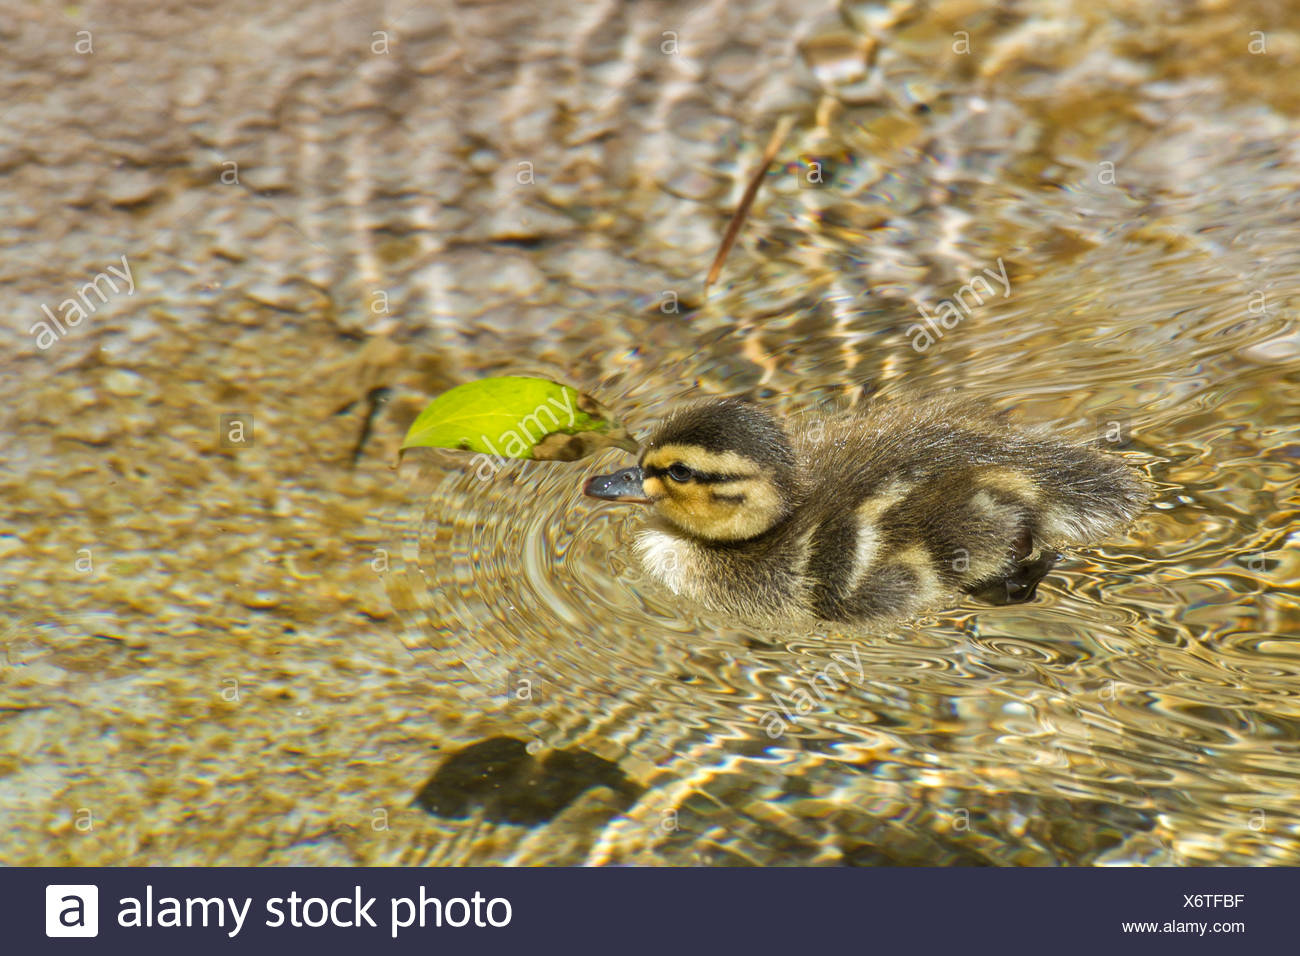 mallard ducklings, duck, animals, birds, USA, United States, America, water - Stock Image